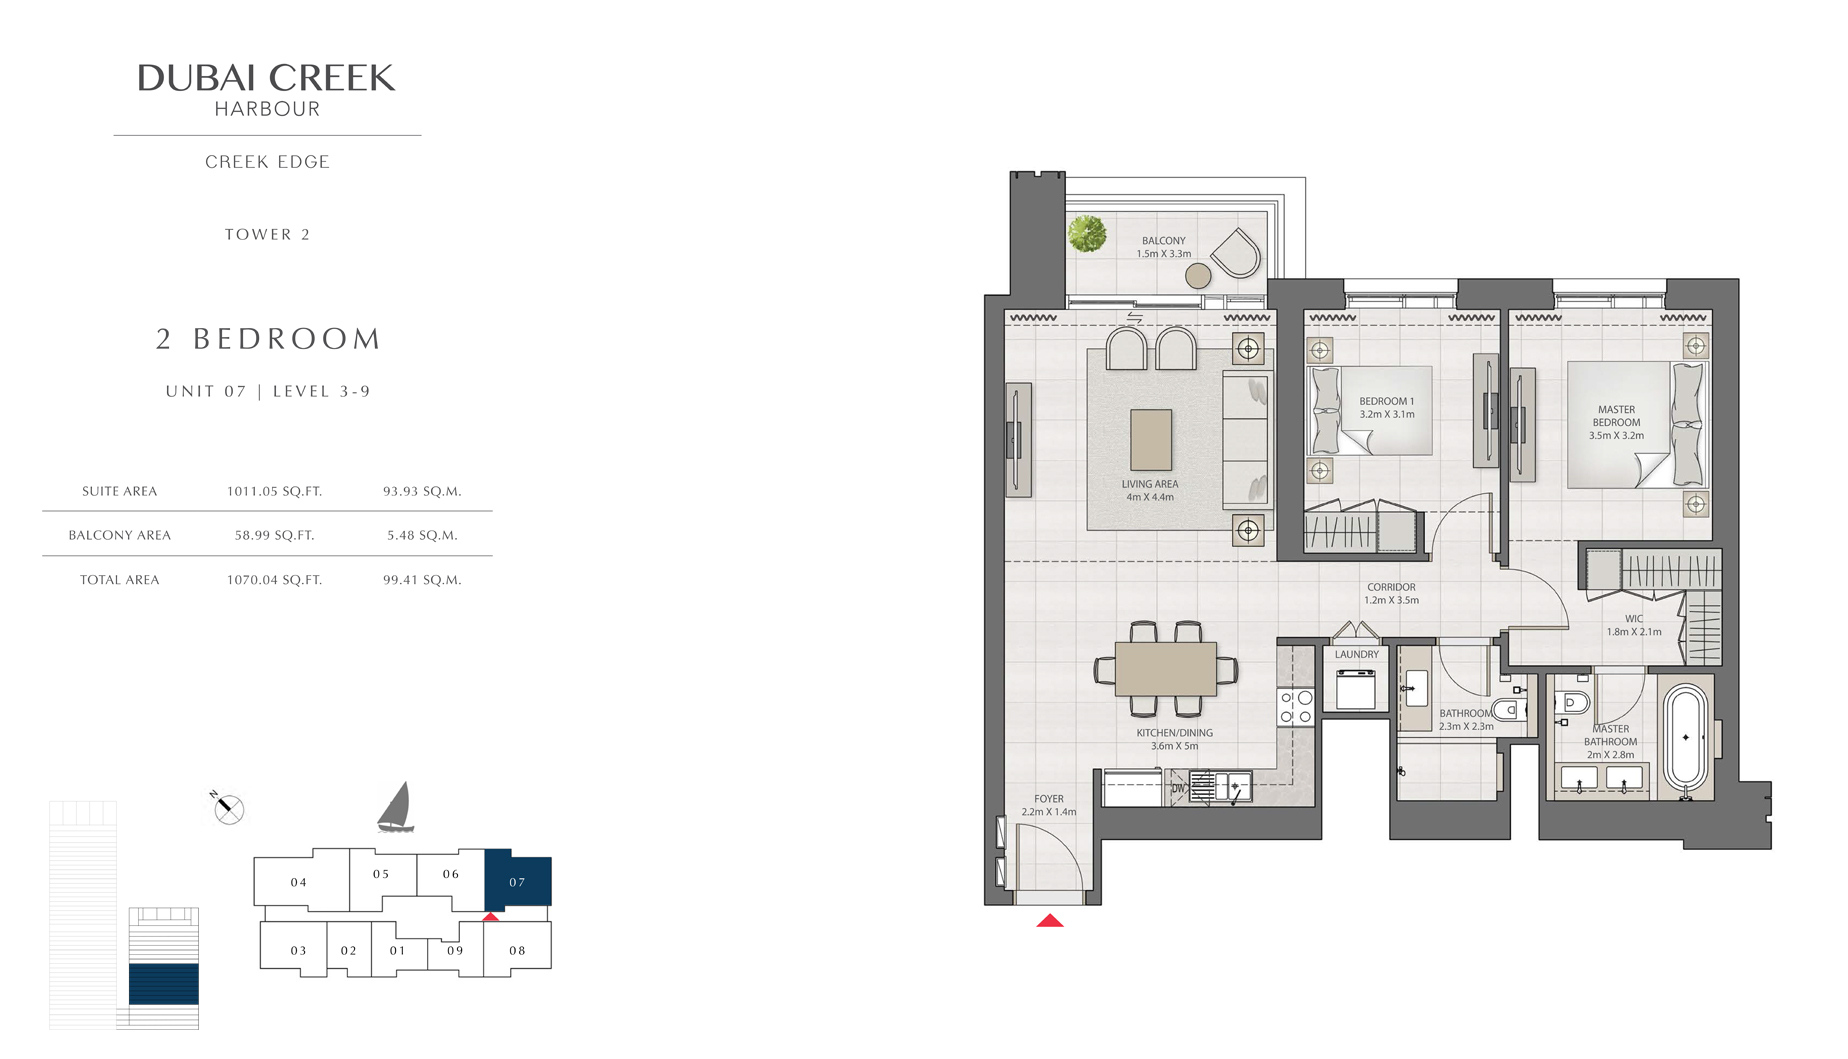 2 Bedroom Tower 2 Unit 07 Level 3-9 Size 1070 sq.ft